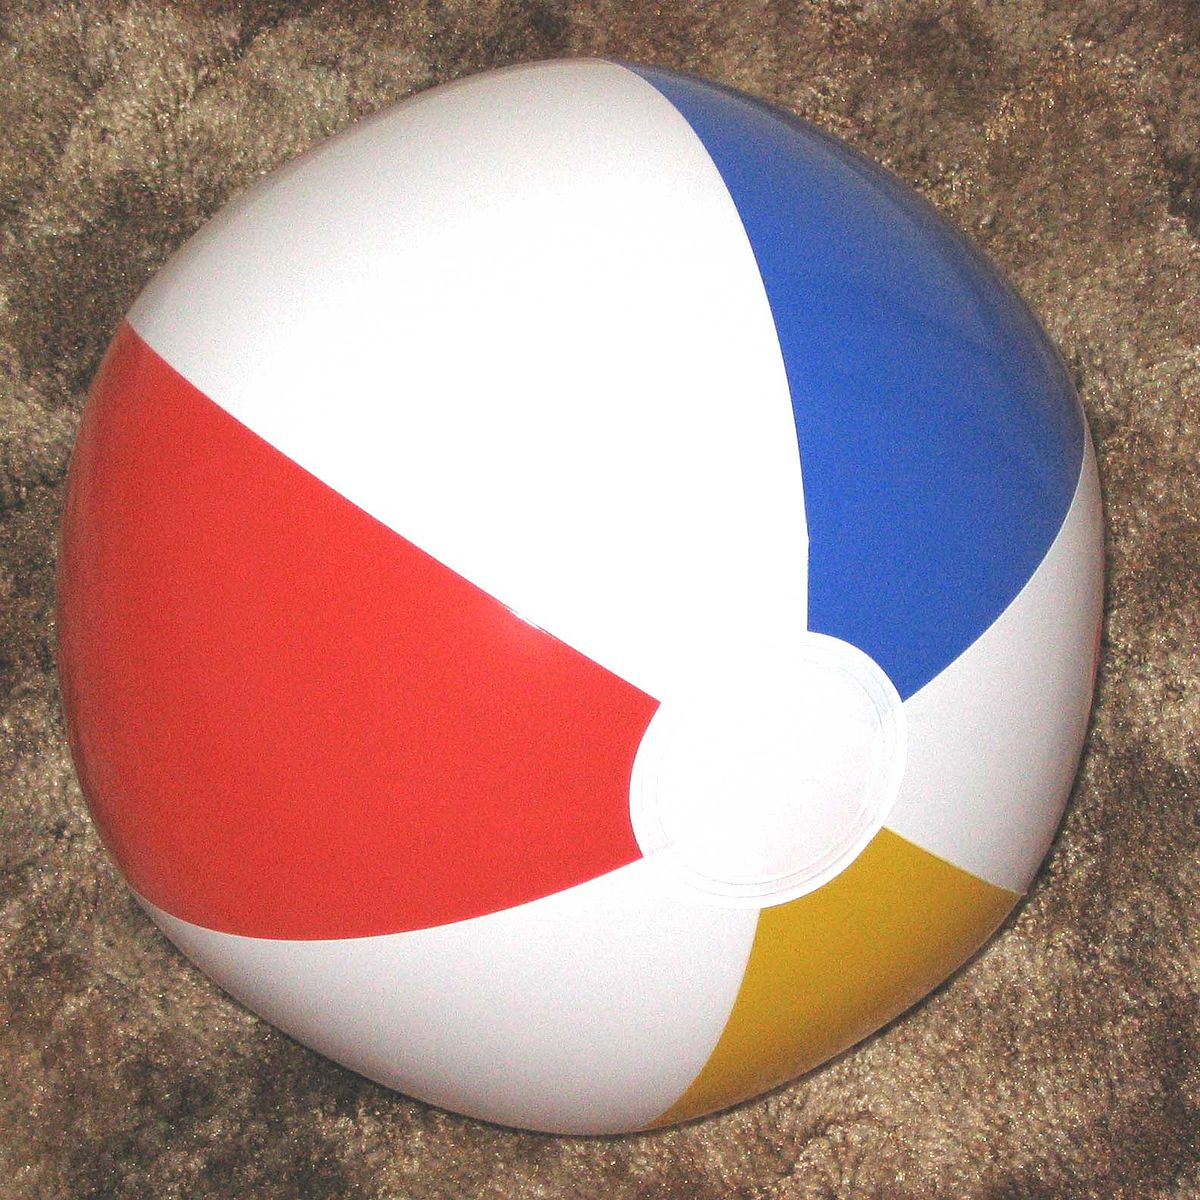 Beach ball - Wikipedia